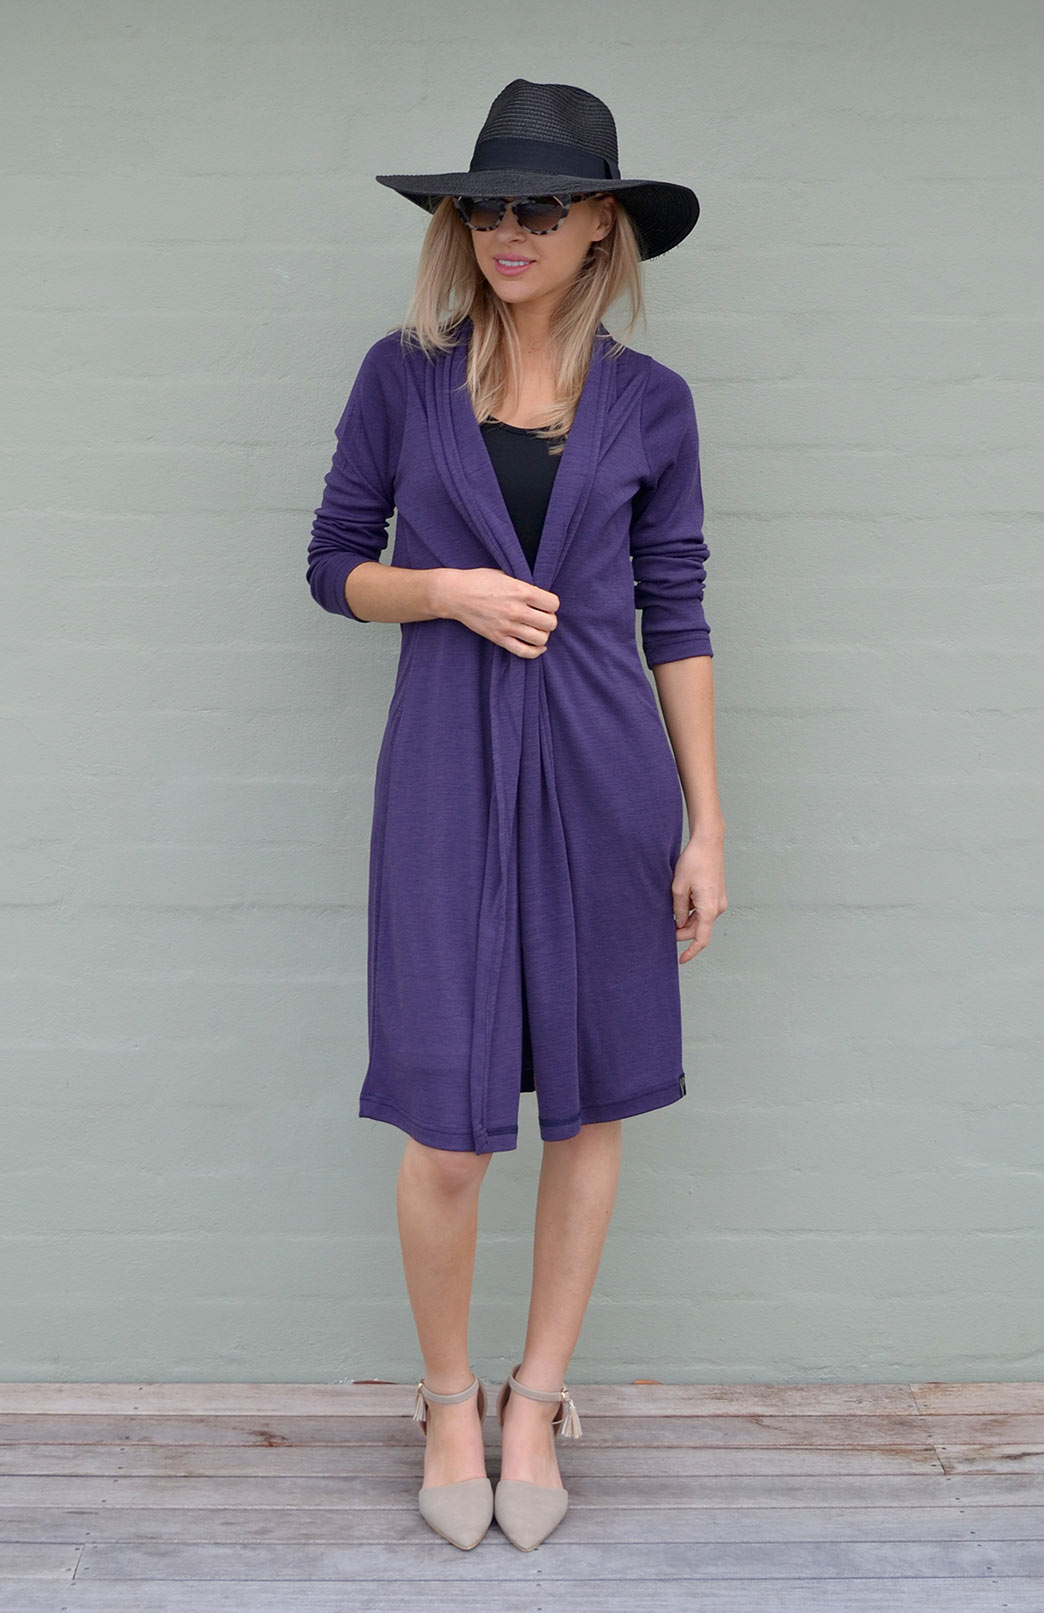 Long Drape Cardigan - Heavyweight - Women's Deep Grape Purple Merino Wool Heavyweight Long Drape Cardigan - Smitten Merino Tasmania Australia